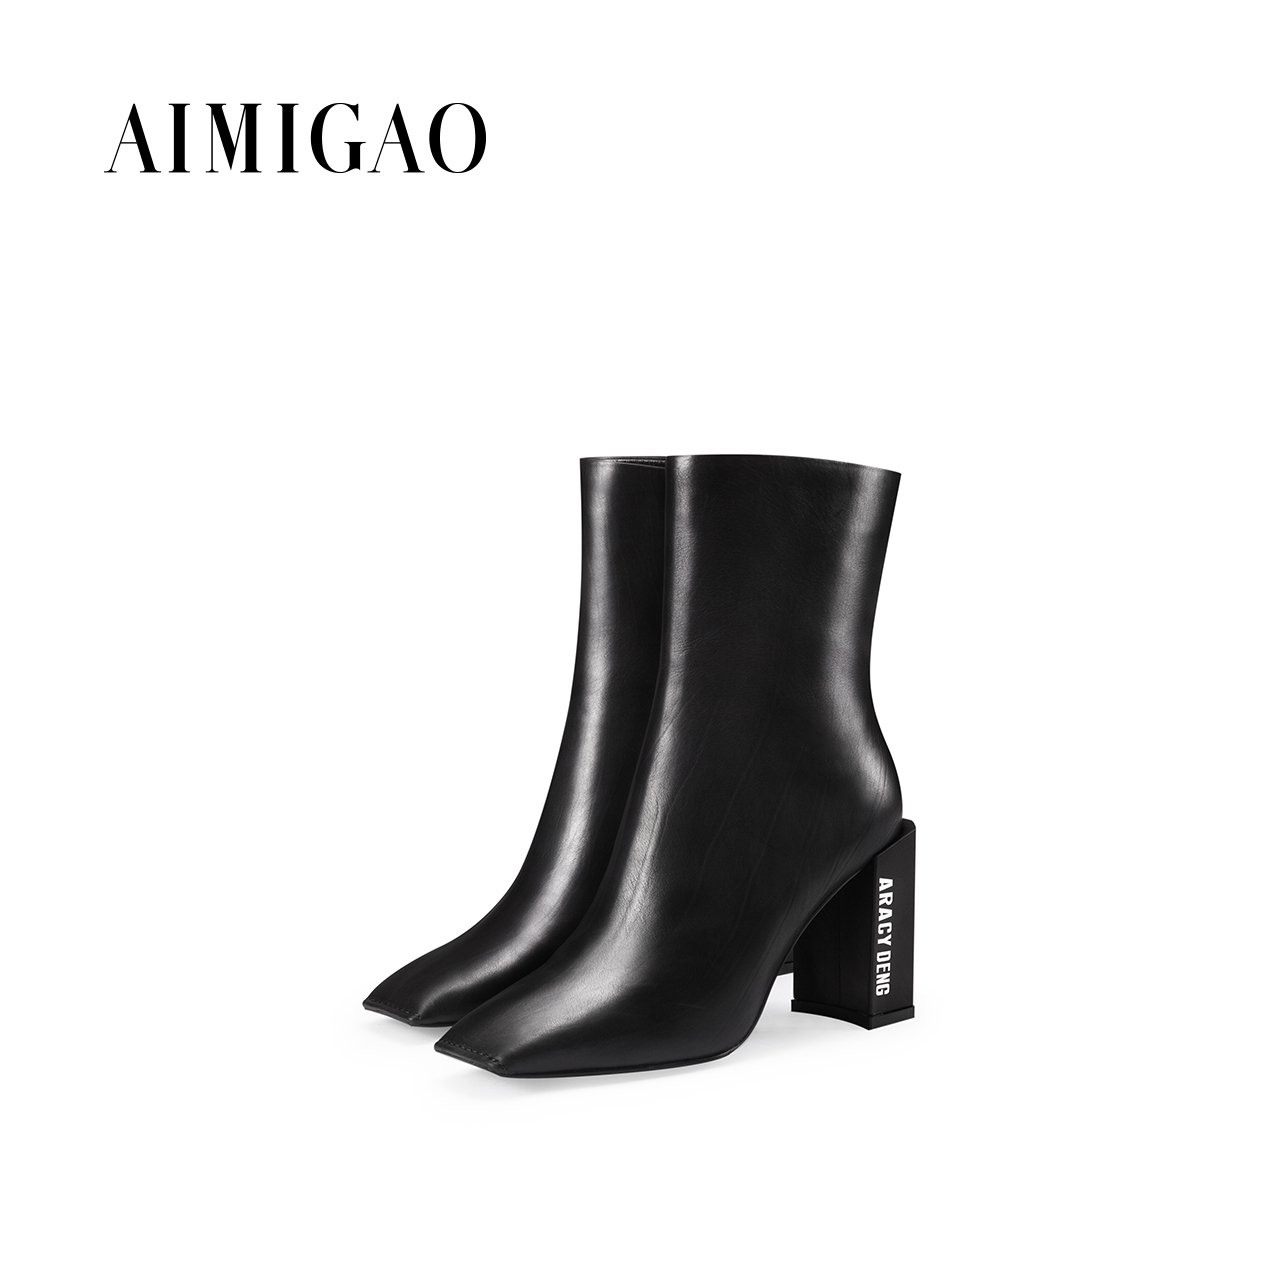 AIMIGAO cowhide leather high heels ankle boots for women square toe side zipper Fashion ankle boots 2017 autumn winter new 2018 new arrival genuine leather zipper runway autumn winter boots round toe high heels keep warm elegant women ankle boots l29